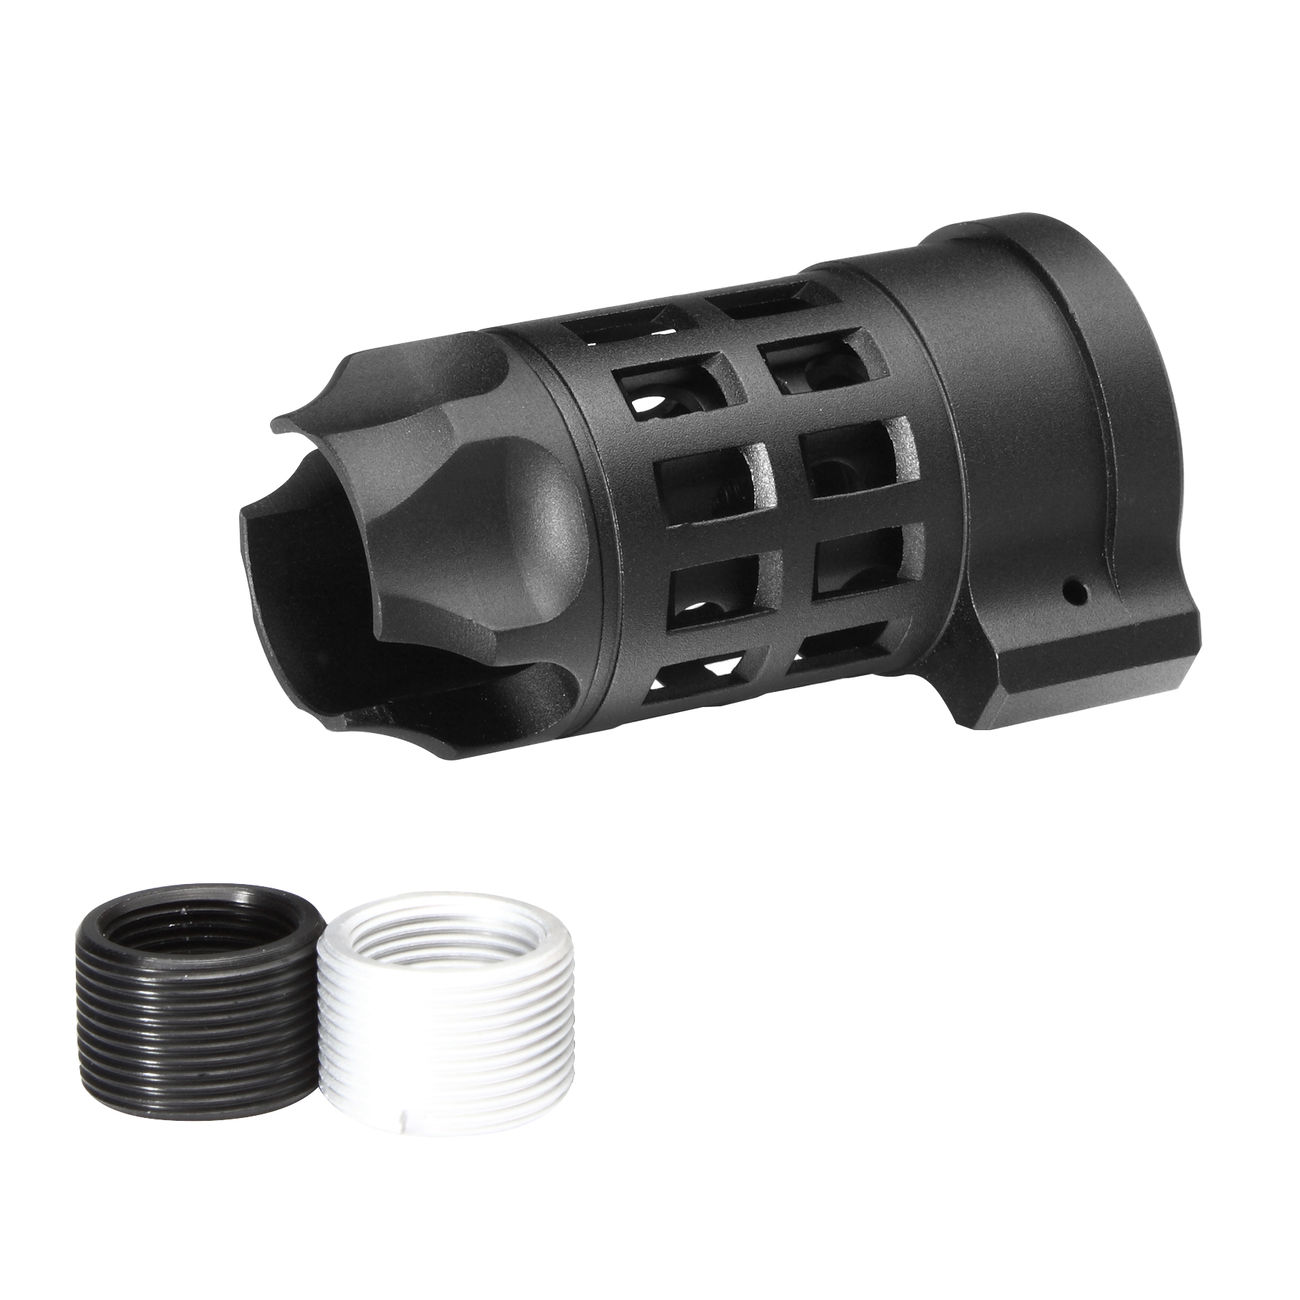 G&P Standard Iron Bars Style Aluminium Flash-Hider schwarz 14mm+ / 14mm- 0